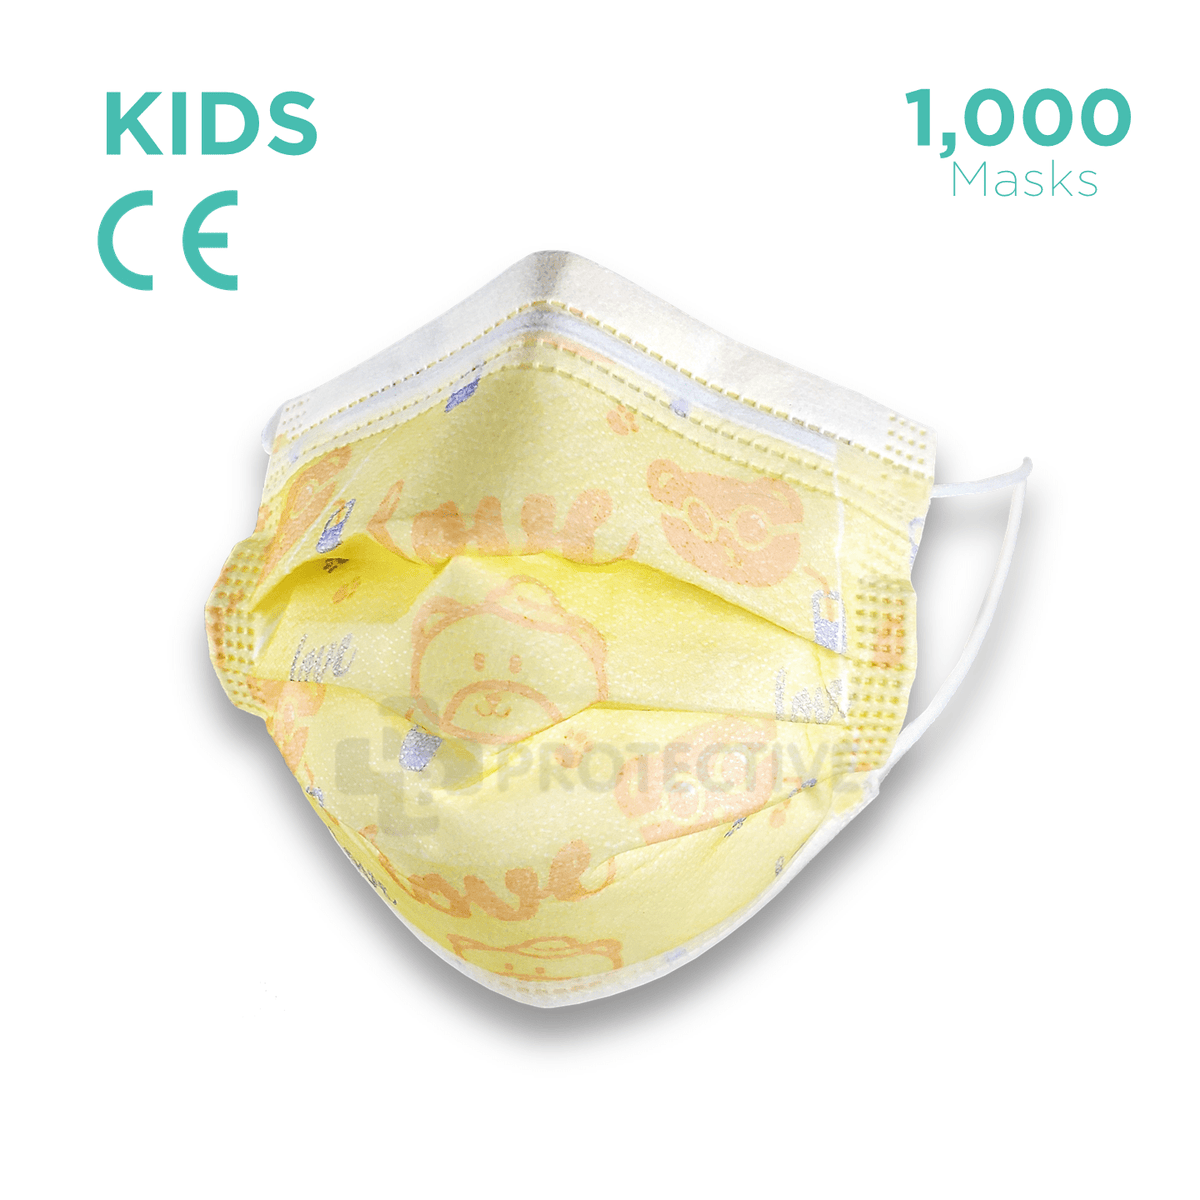 Kids 3 Ply Disposable face Mask - 1,000 Disposable Kids Face Masks